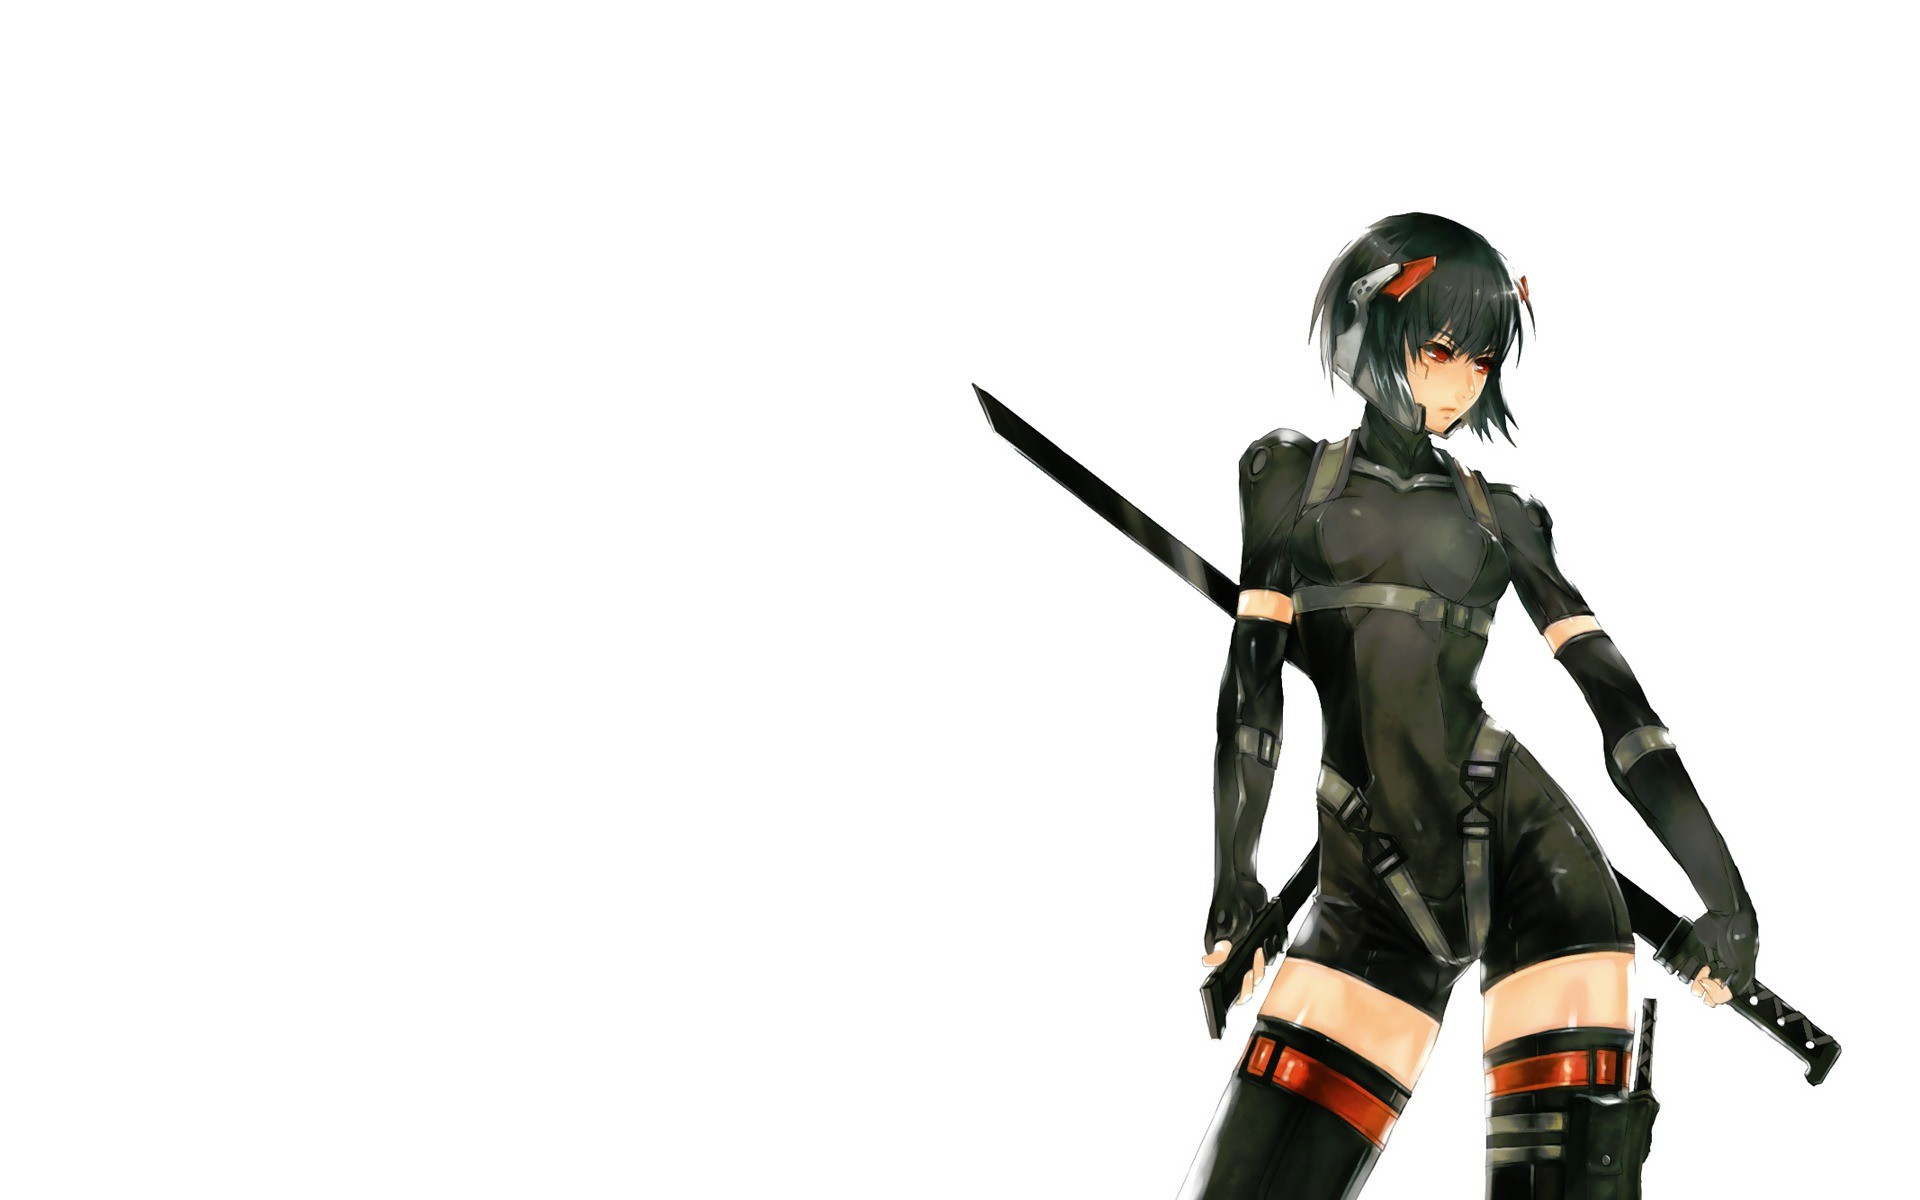 ninja assassin wallpapers 66 images